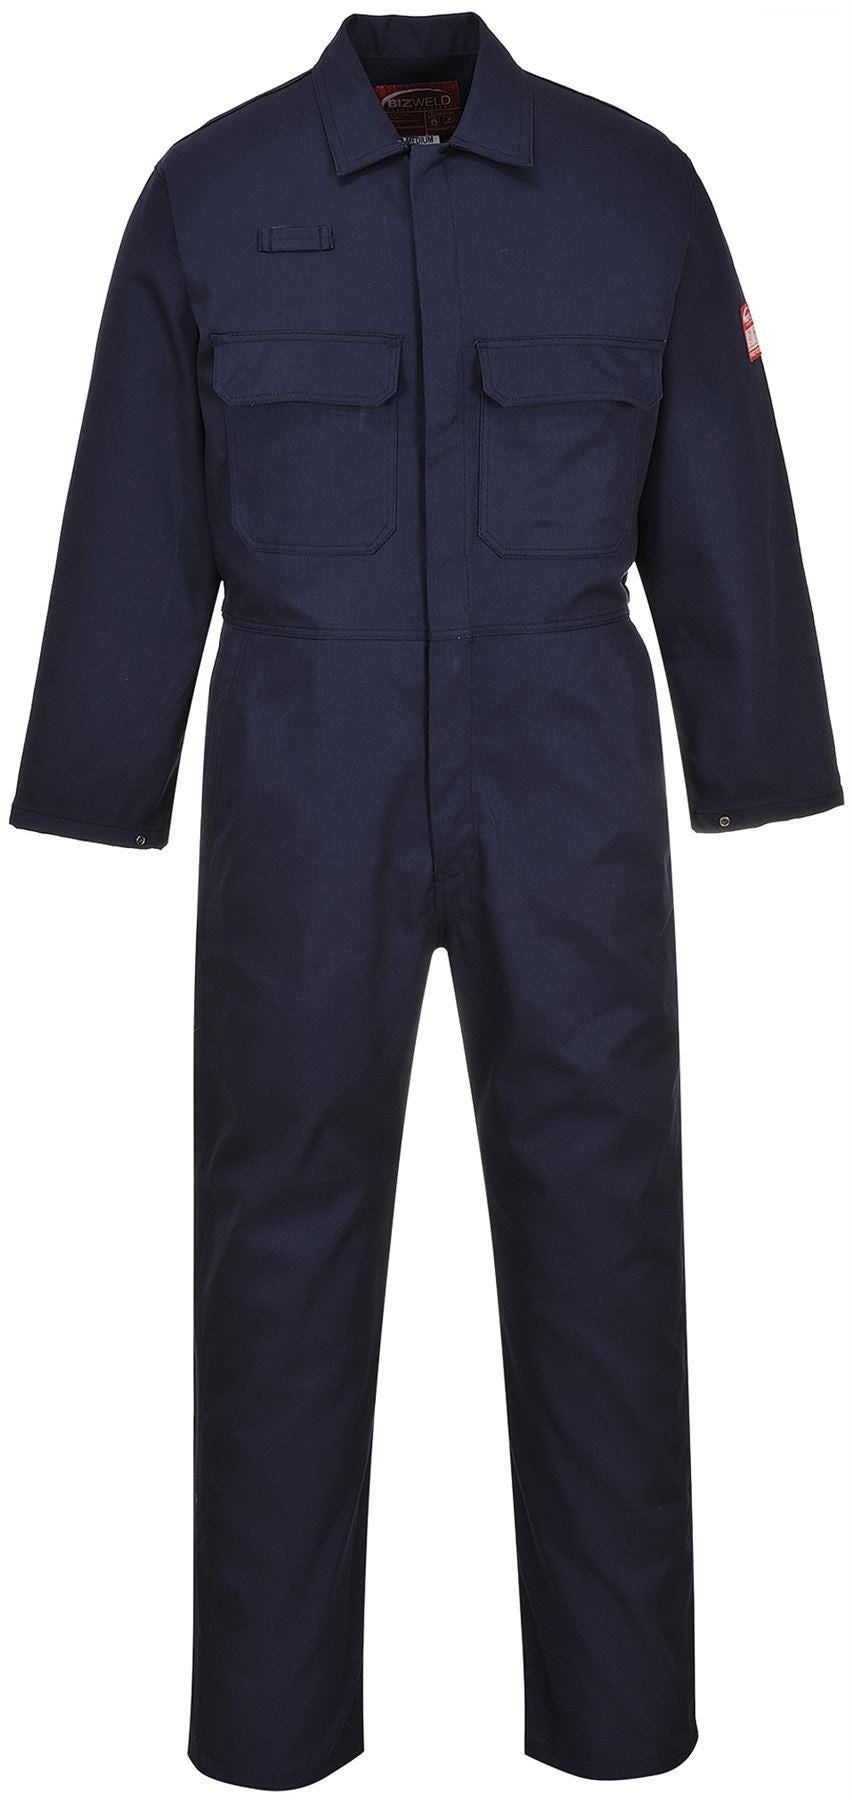 Portwest Bizweld Flame Resistant Coverall - Navy